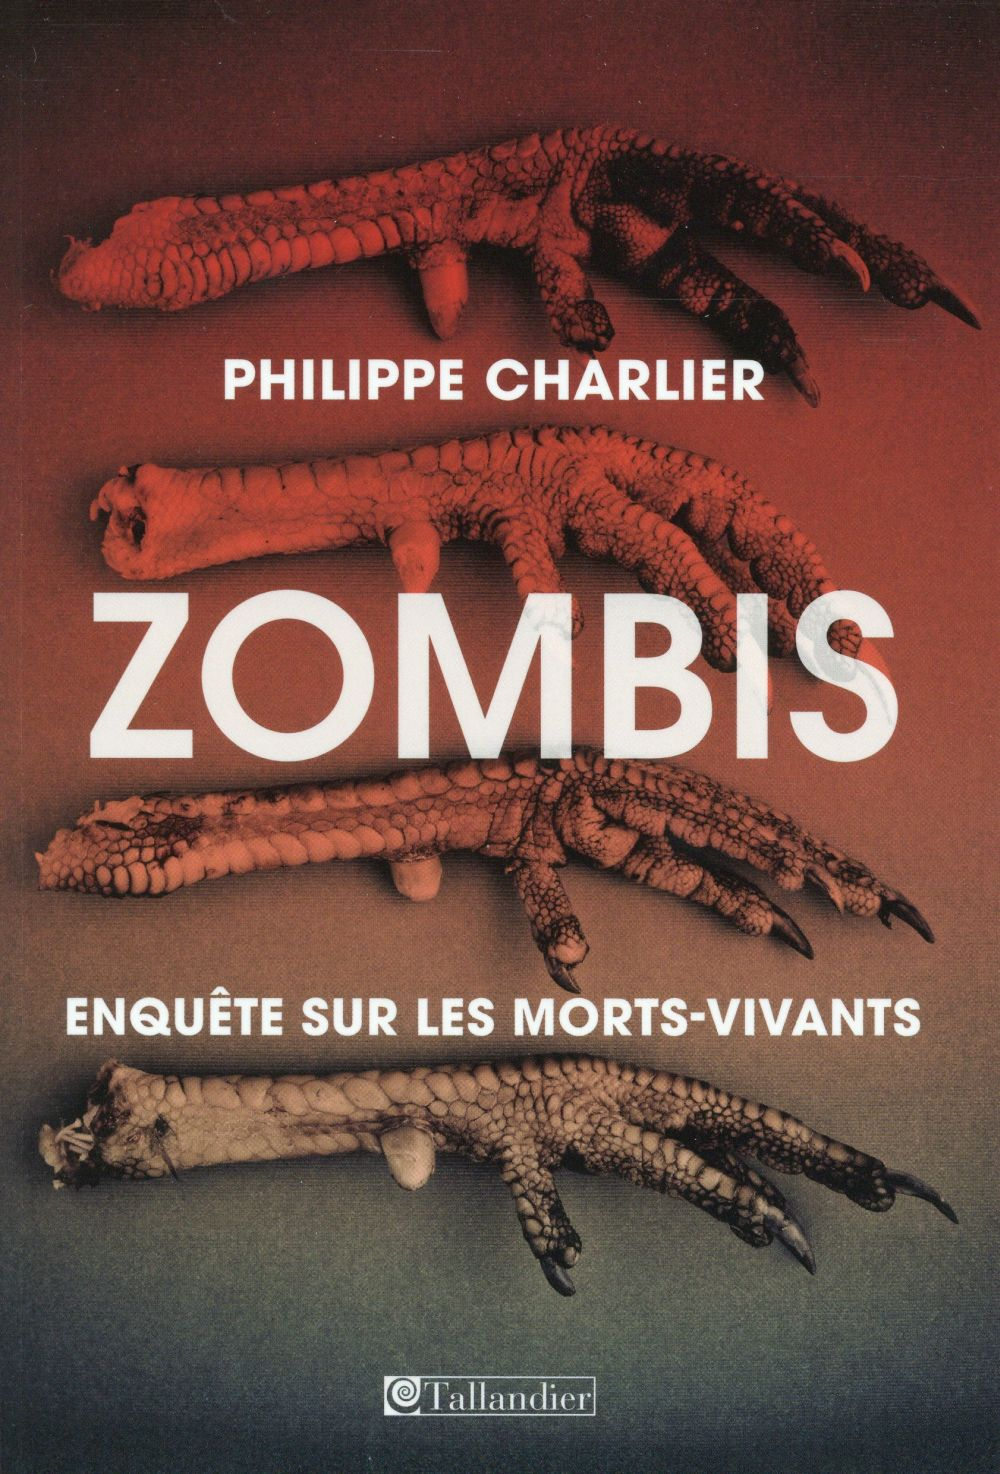 ZOMBIS ENQUETE SUR LES MORTS-VIVANTS